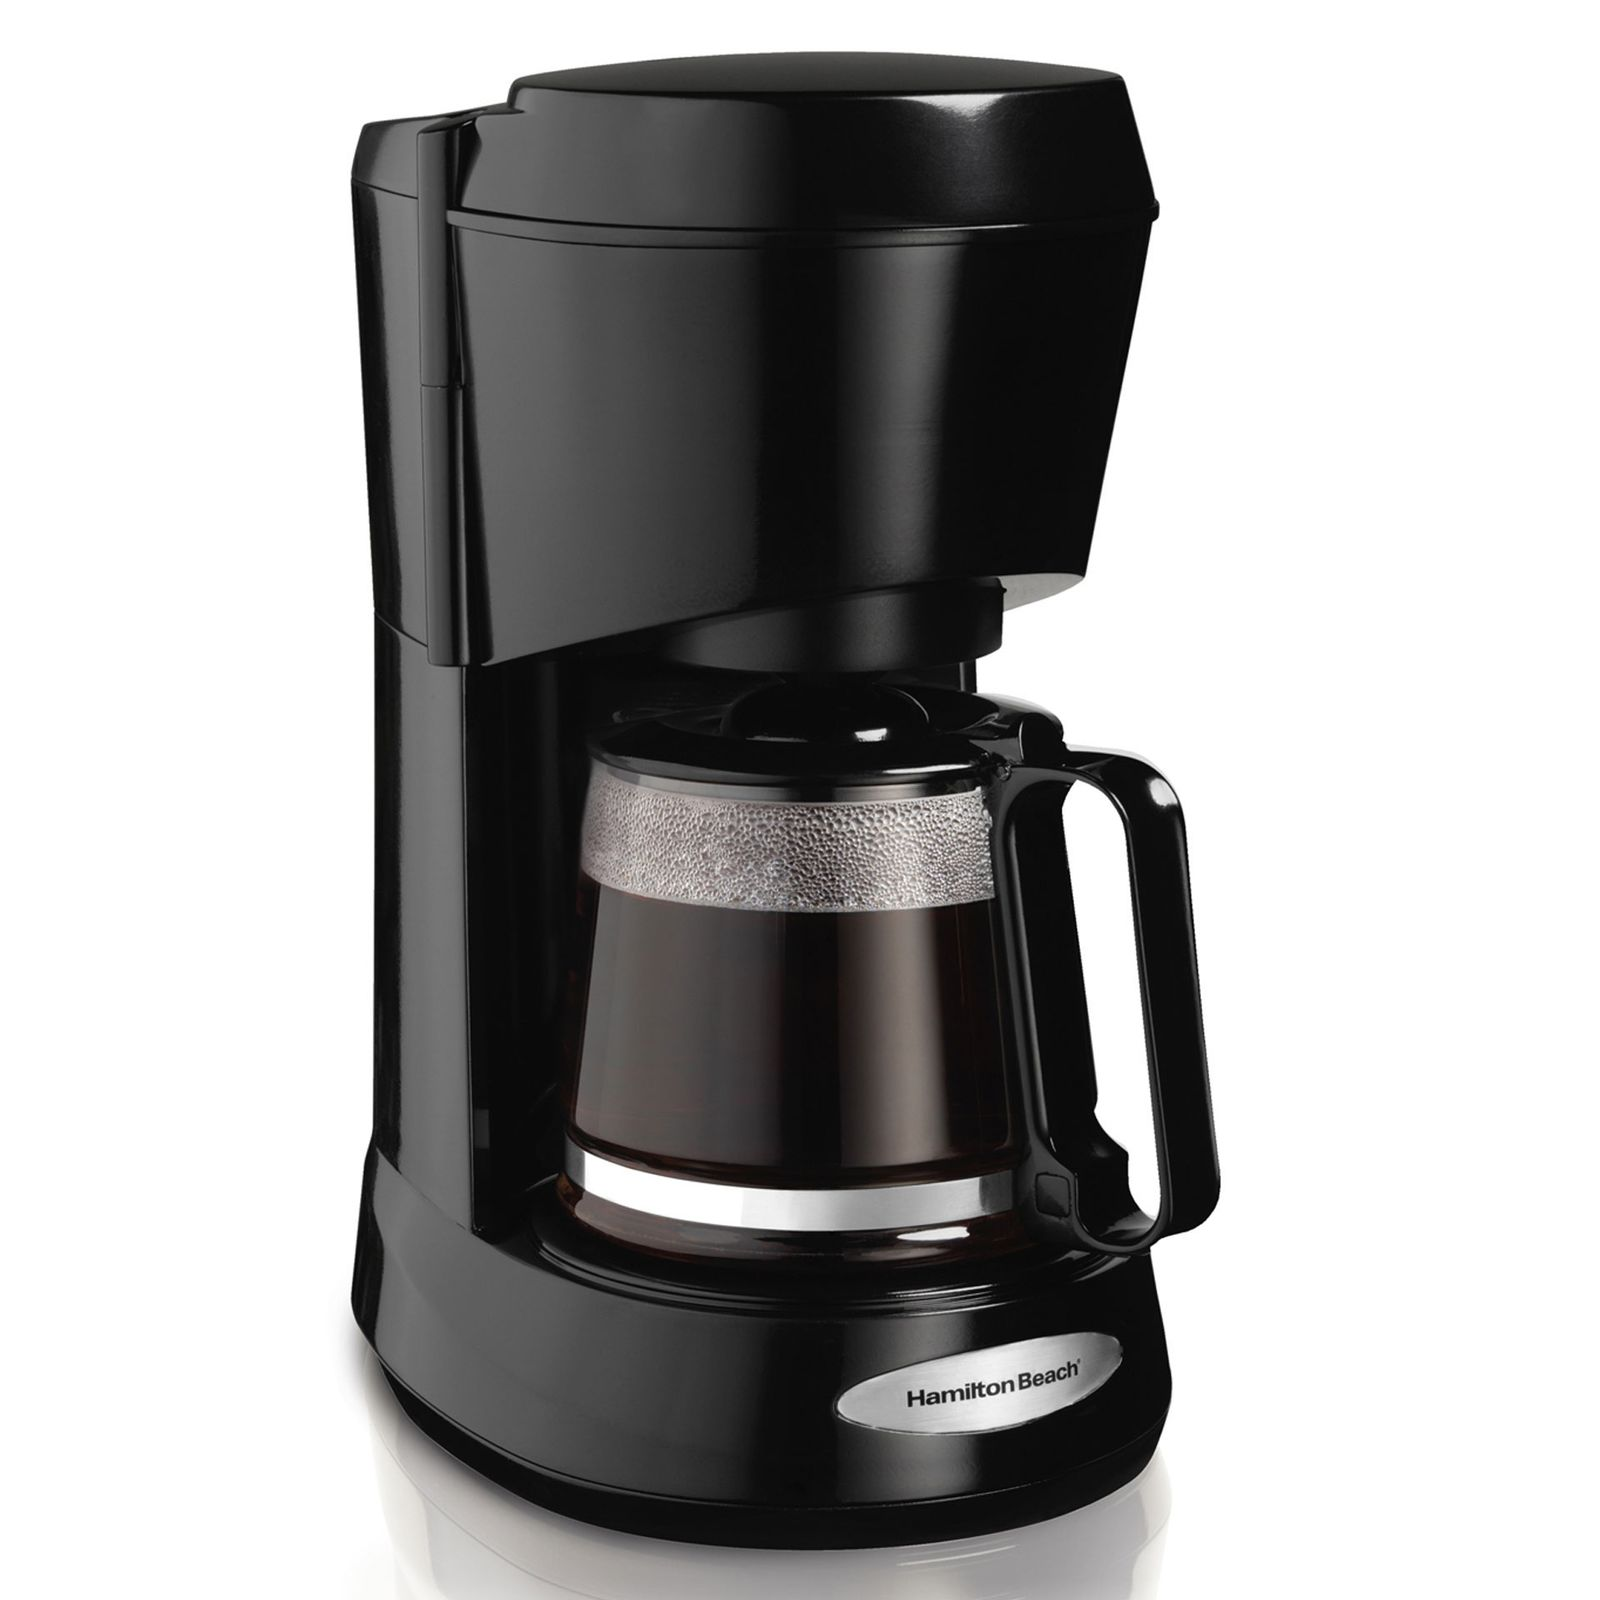 Hamilton Beach 5 Cup Coffee Maker 48136 Review